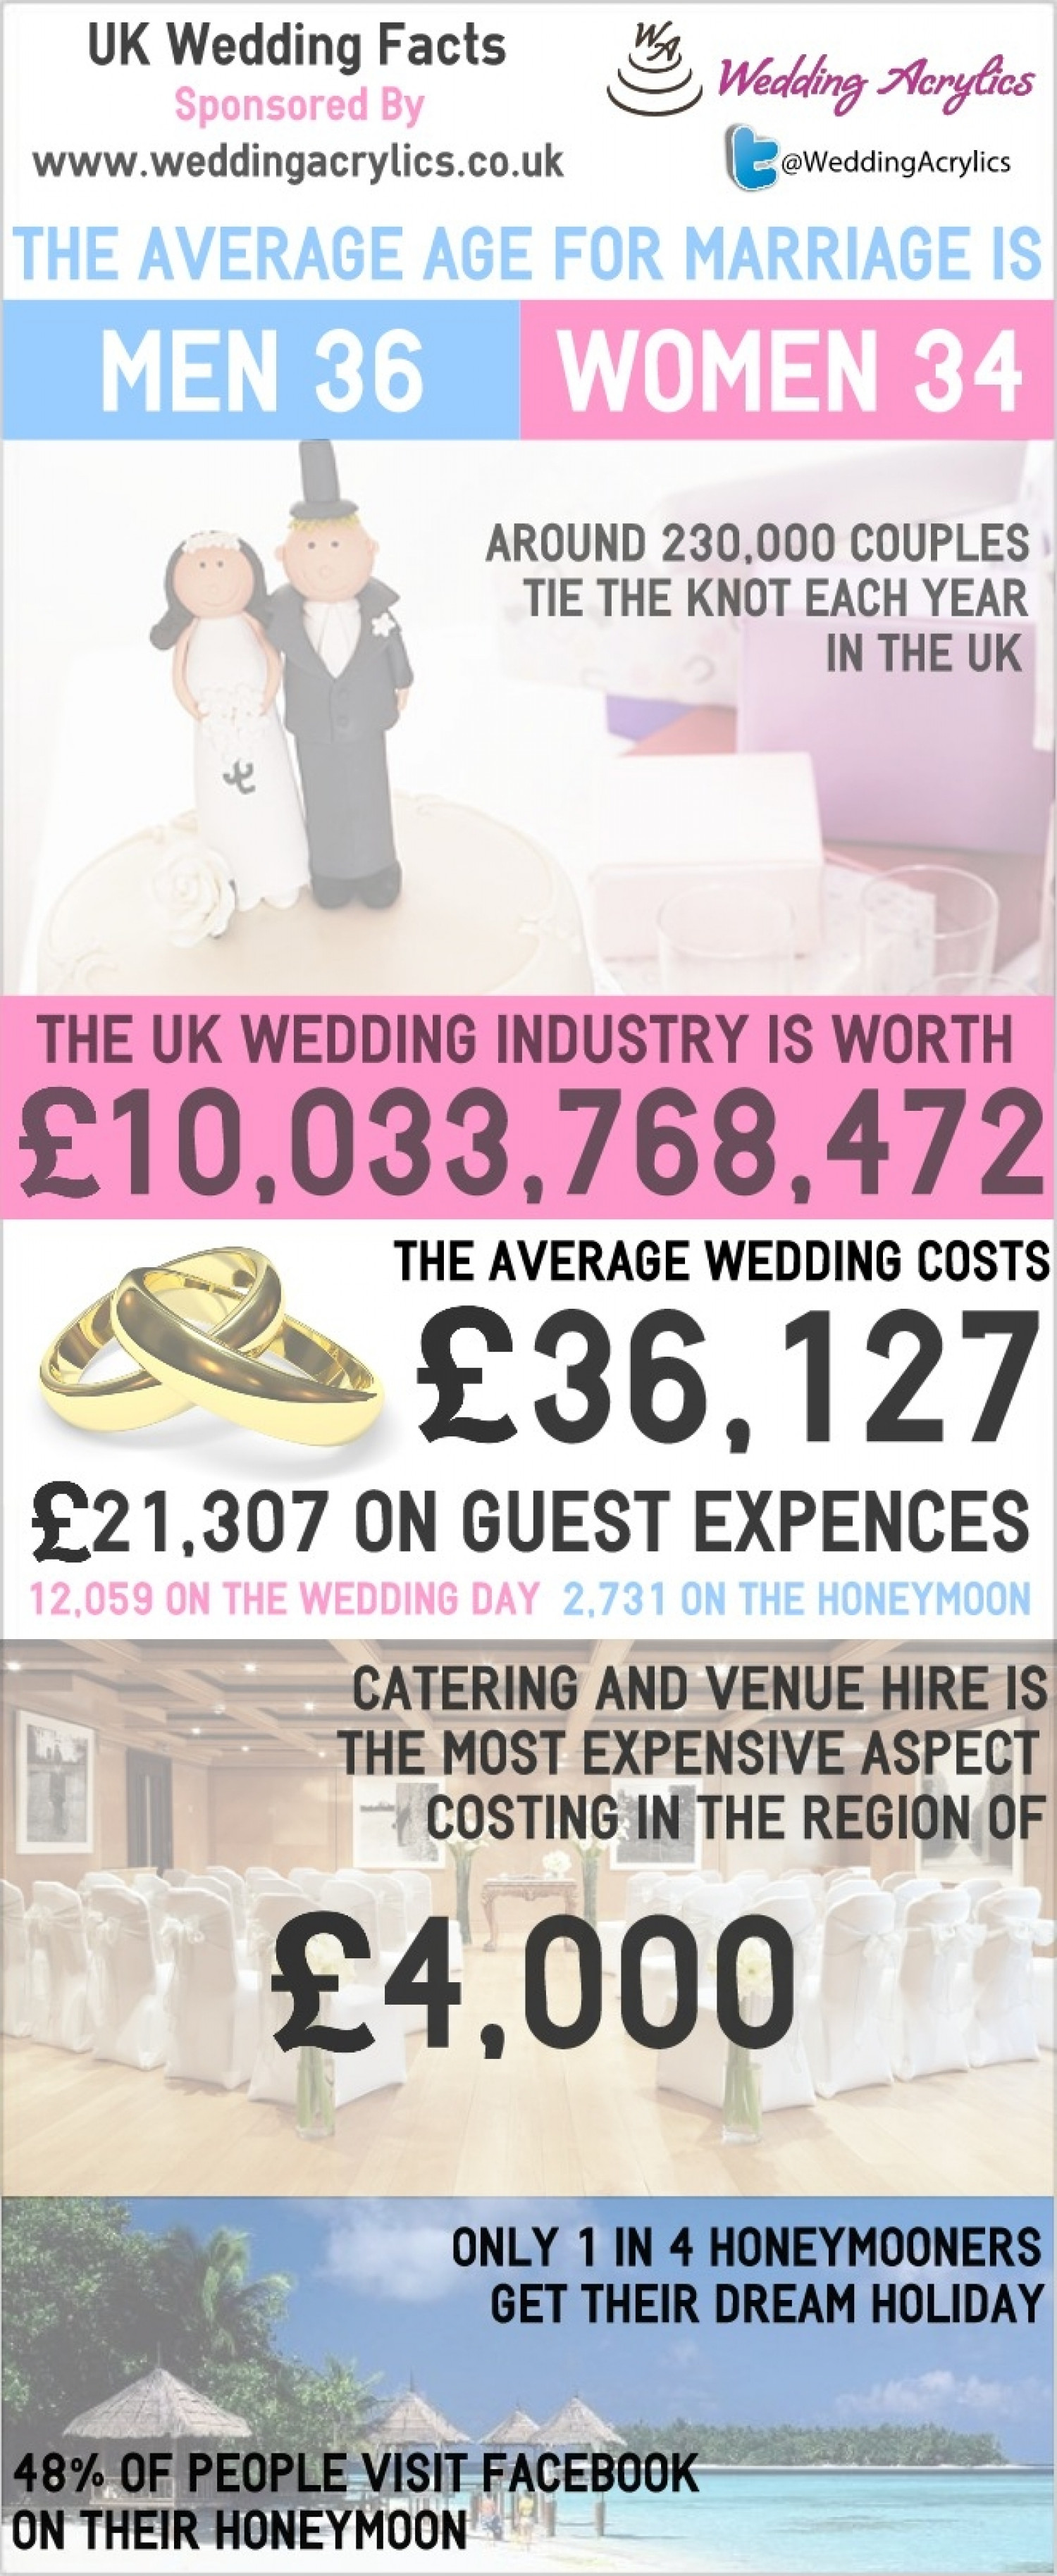 UK Wedding Facts Infographic